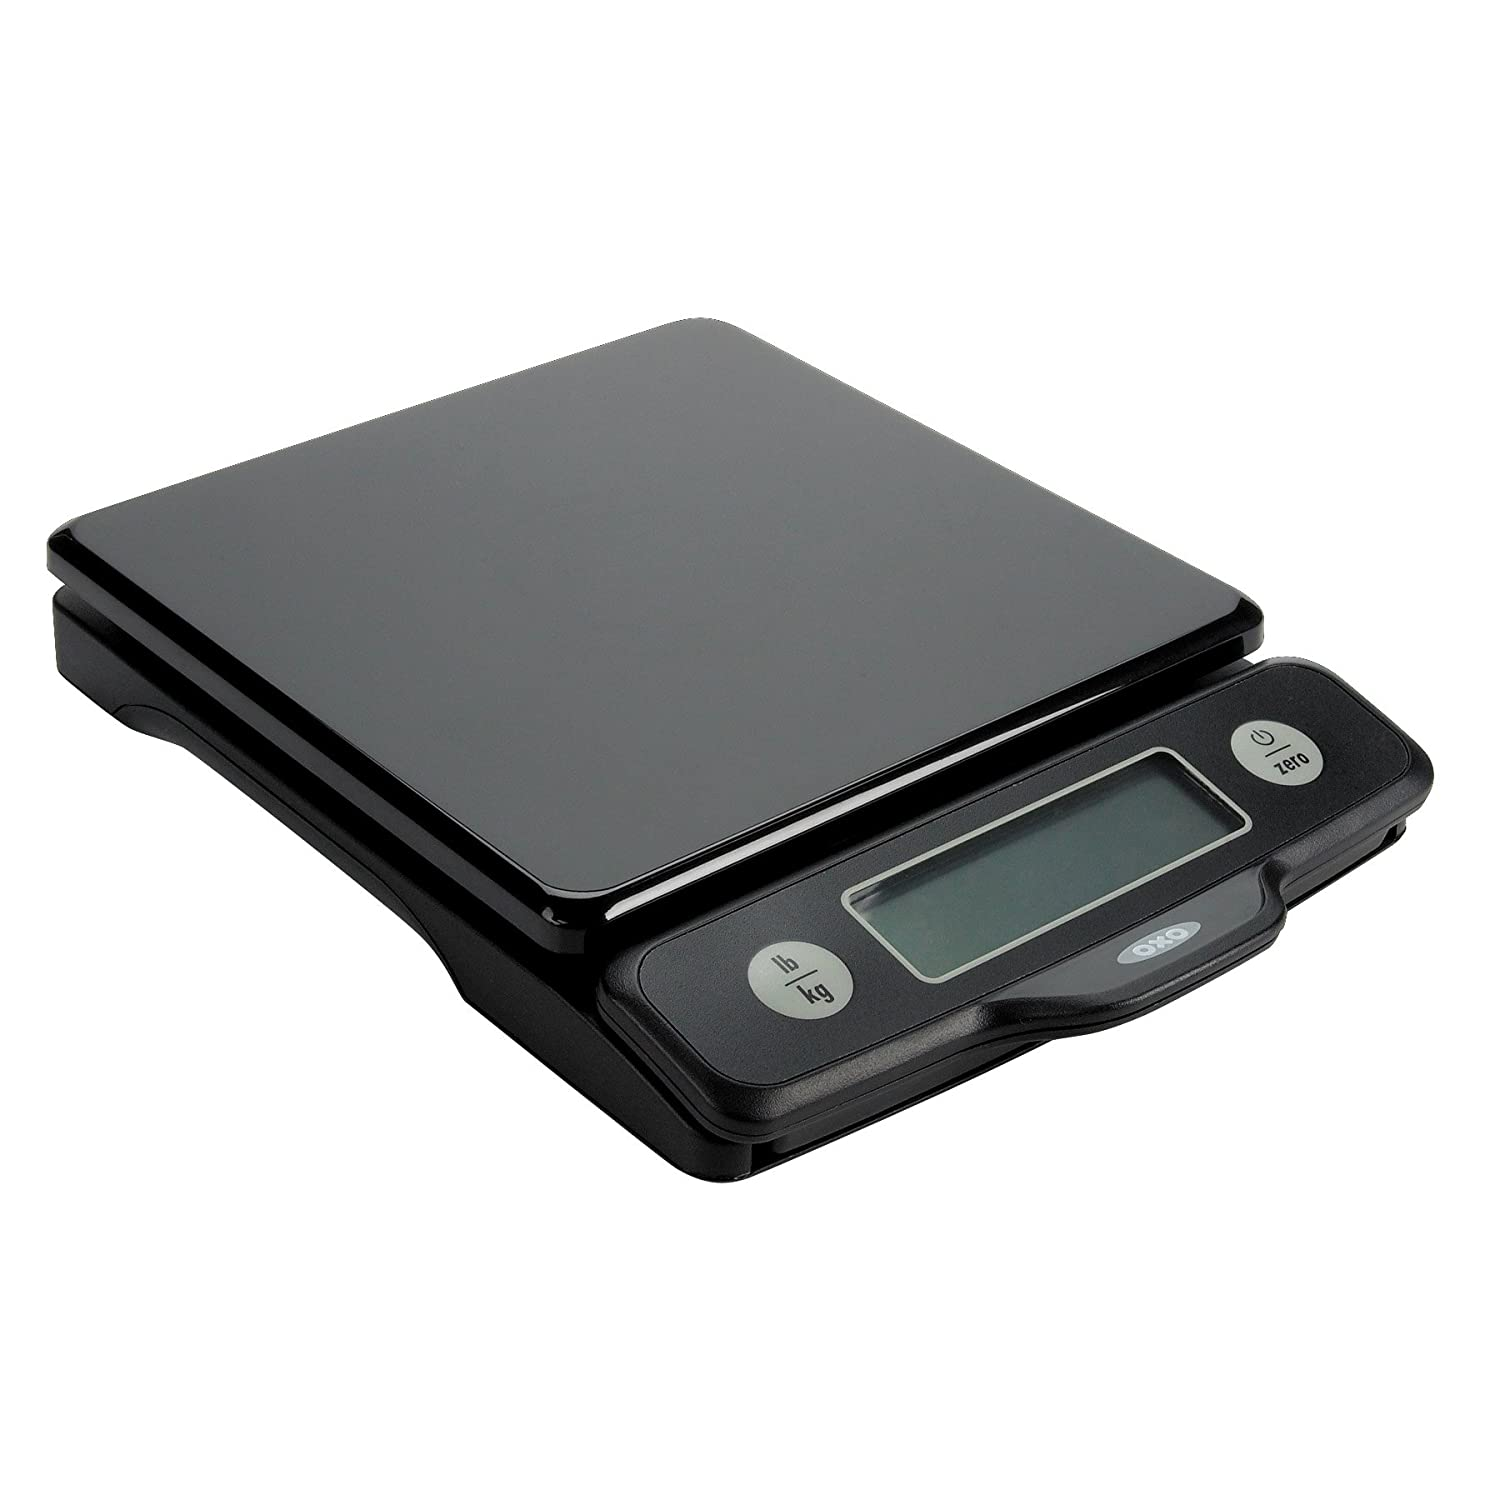 OXO 1157100 Digital Food Scale, Pull Out 5 lb Black